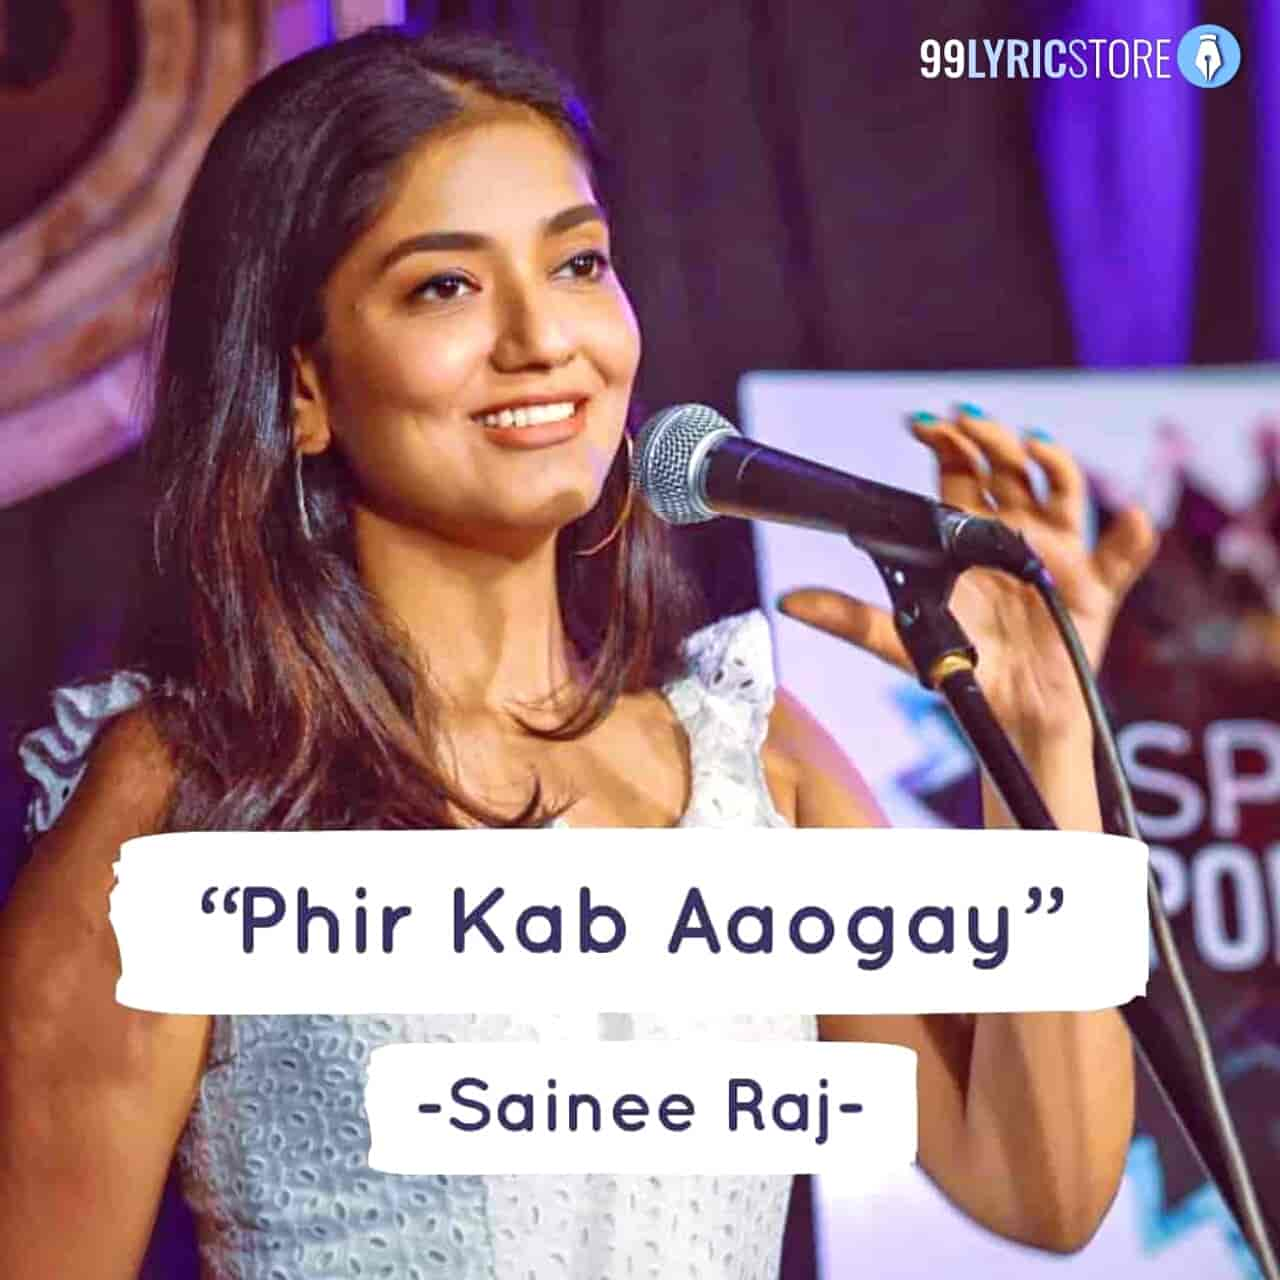 This love Poetry 'Phir Kab Aaogey' has written and performed by Sainee Raj under the label of Spill Poetry